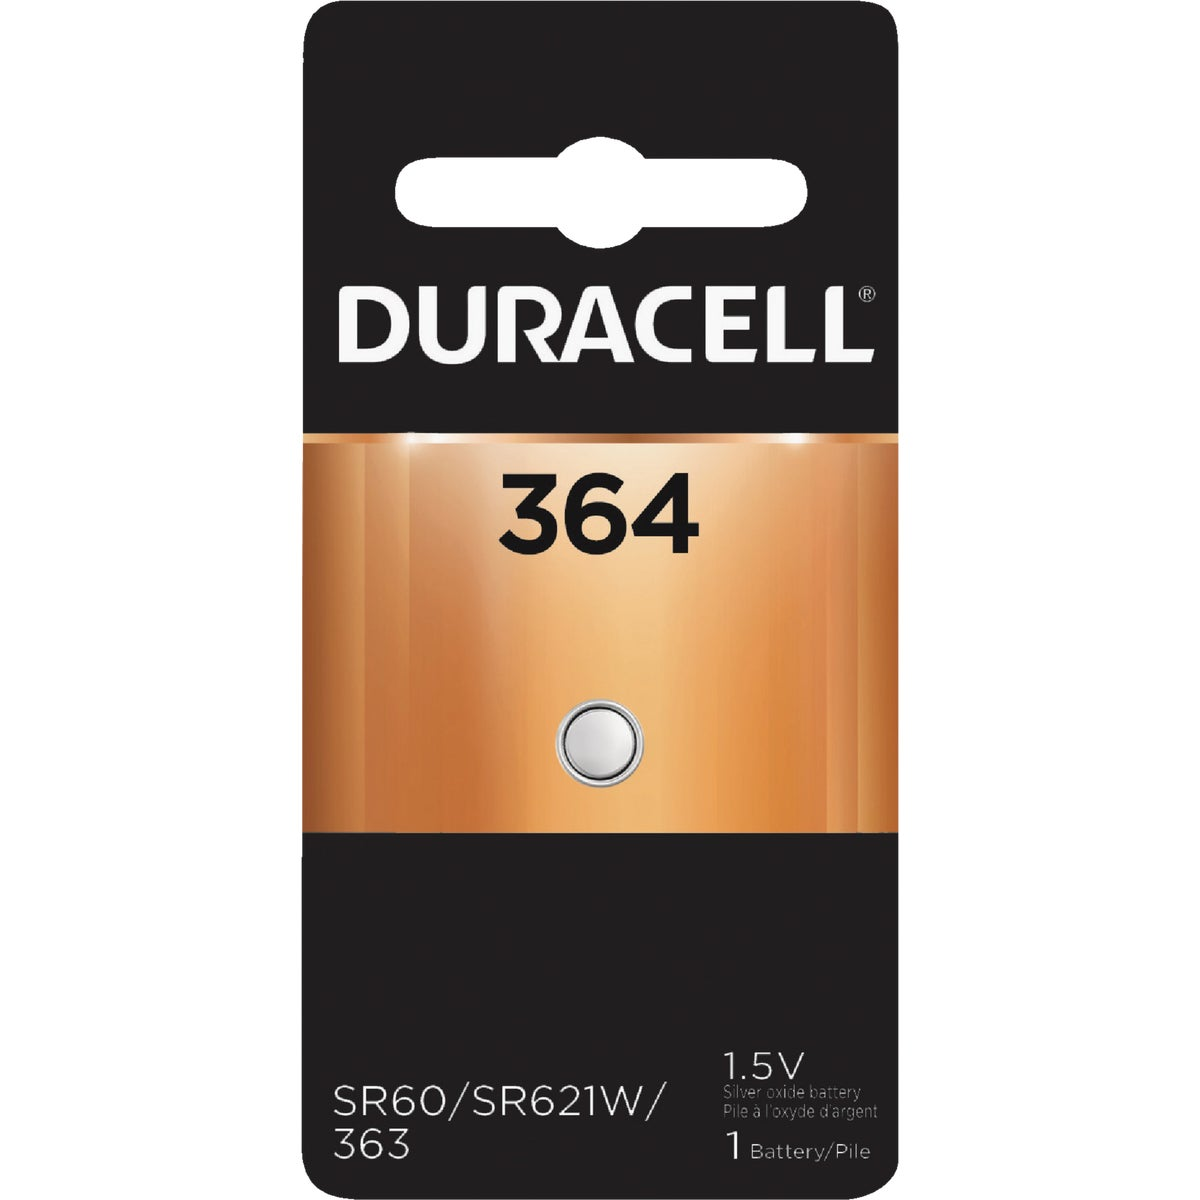 D364 1.5V WATCH BATTERY - 41087 by P & G  Duracell